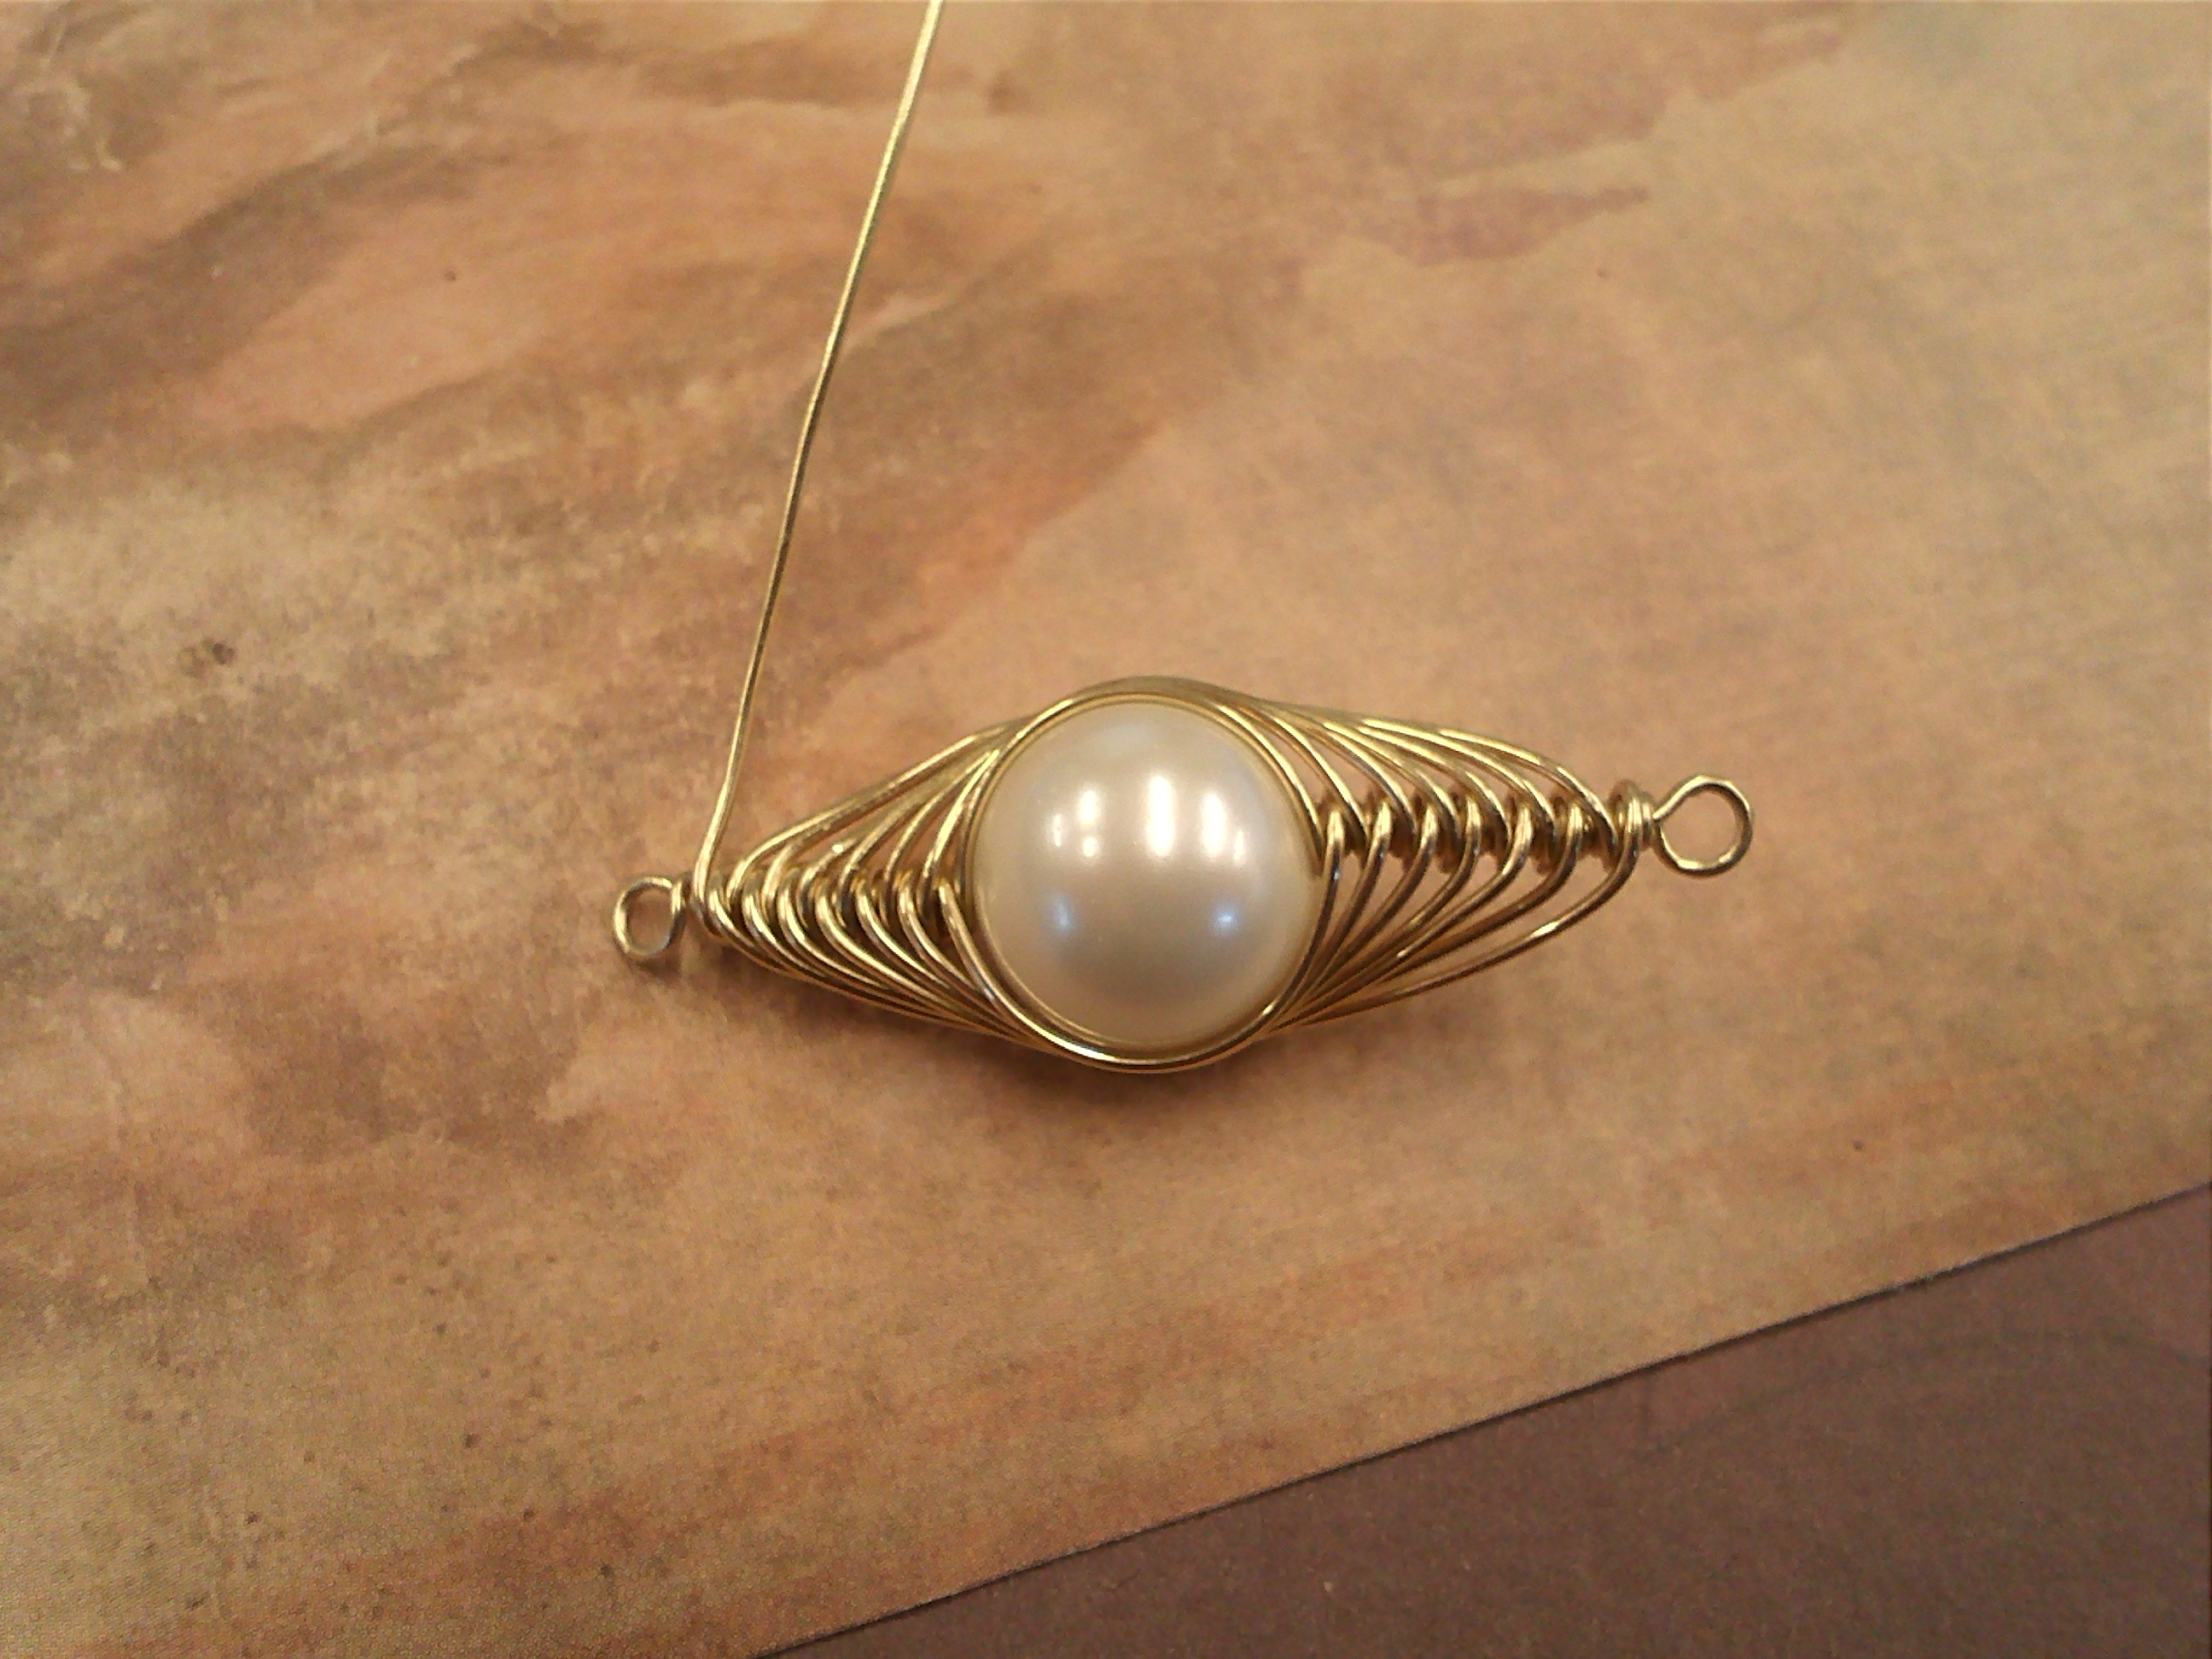 Step 7 of How To Make a Herringbone Wirewrap: Do about 6 or 7 wrap on each side.